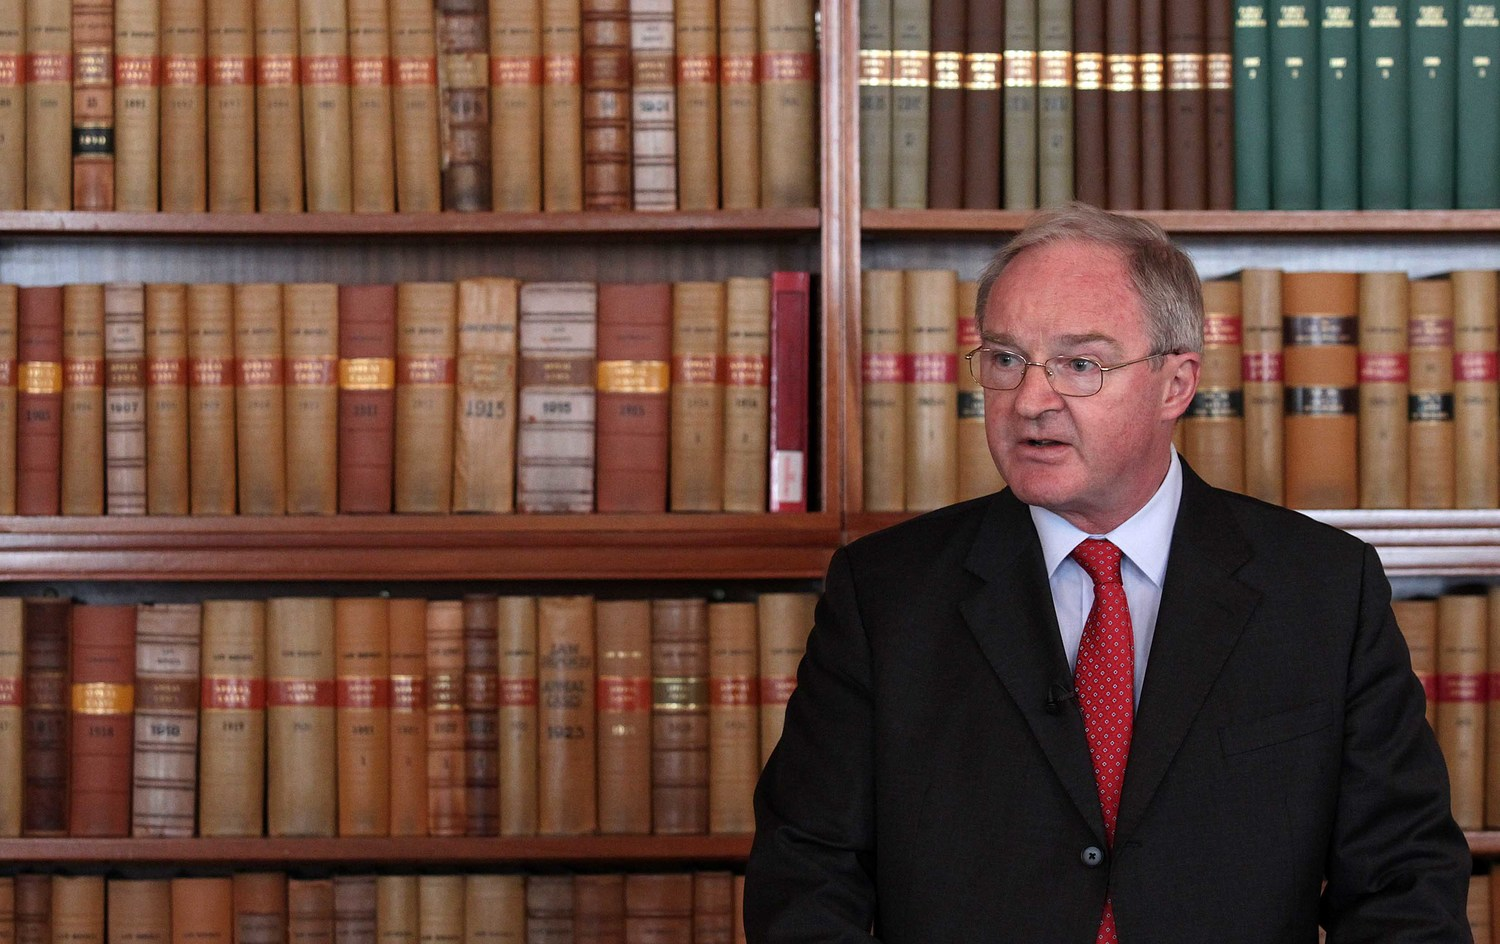 The Lord Chief Justice for Northern Ireland, Sir Declan Morgan, has set out his plans for dealing with legacy inquests